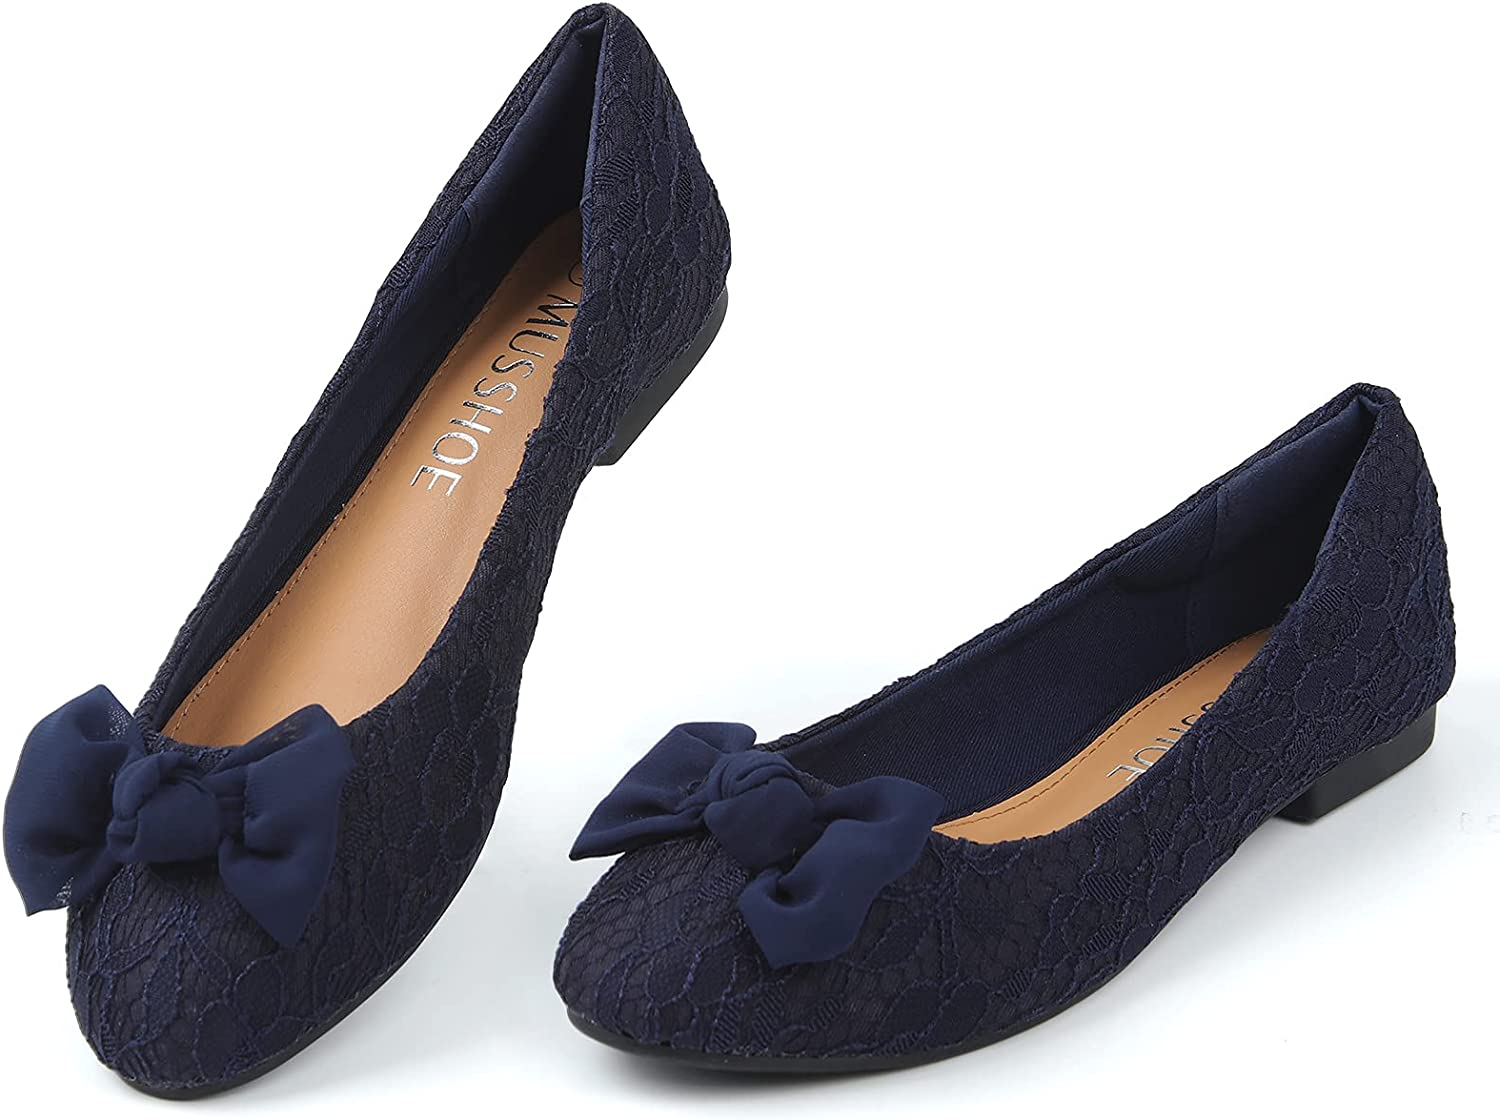 MUSSHOE Flats for Women Clearance SALE Limited Max 45% OFF time Floral Lace Comfortable Sl Women's